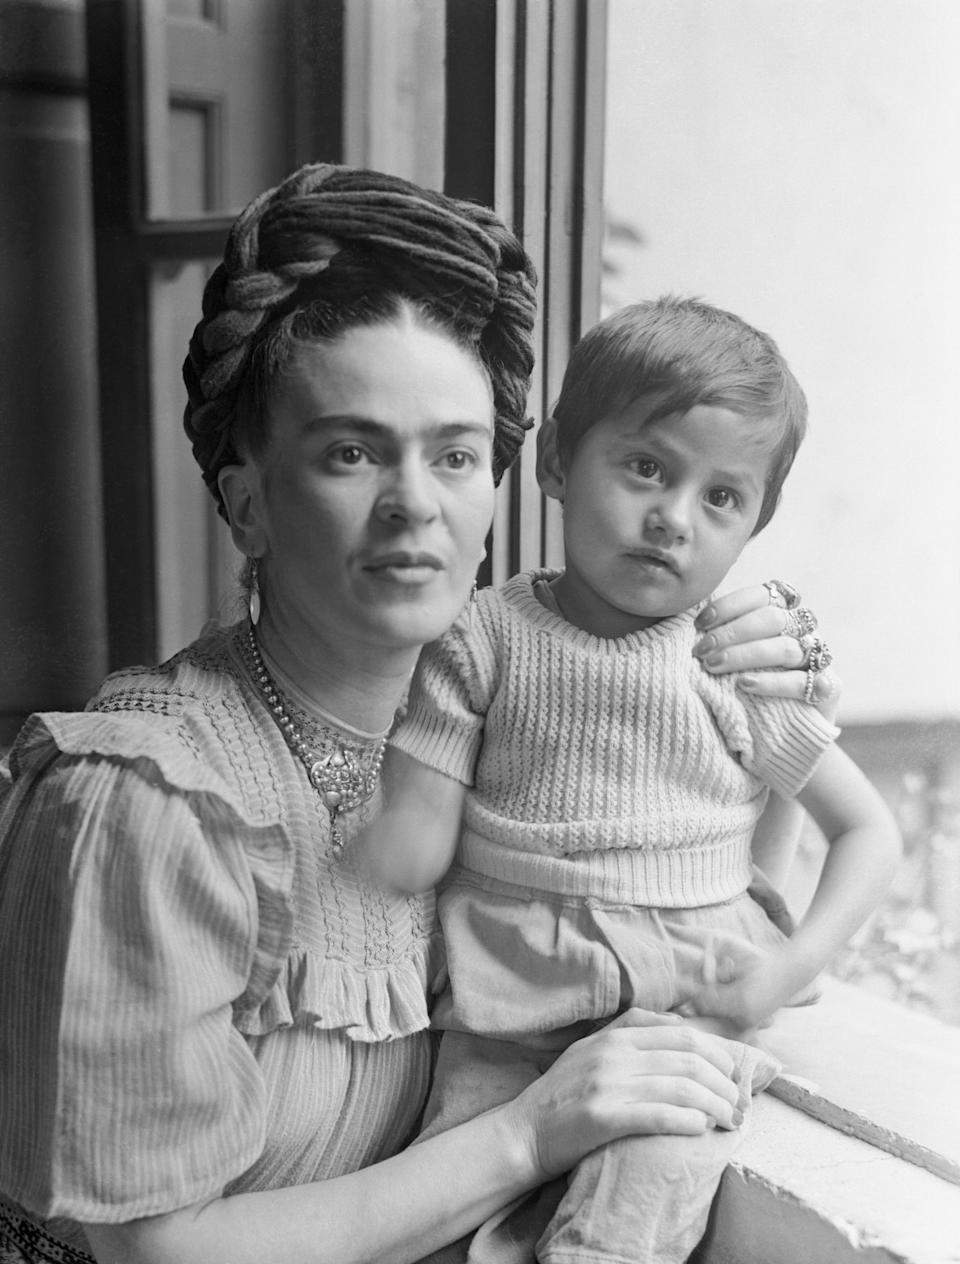 (Original Caption) Frida Kahlo, (1910-1954), Mexican painter and wife of Diego Rivera is shown here with child.